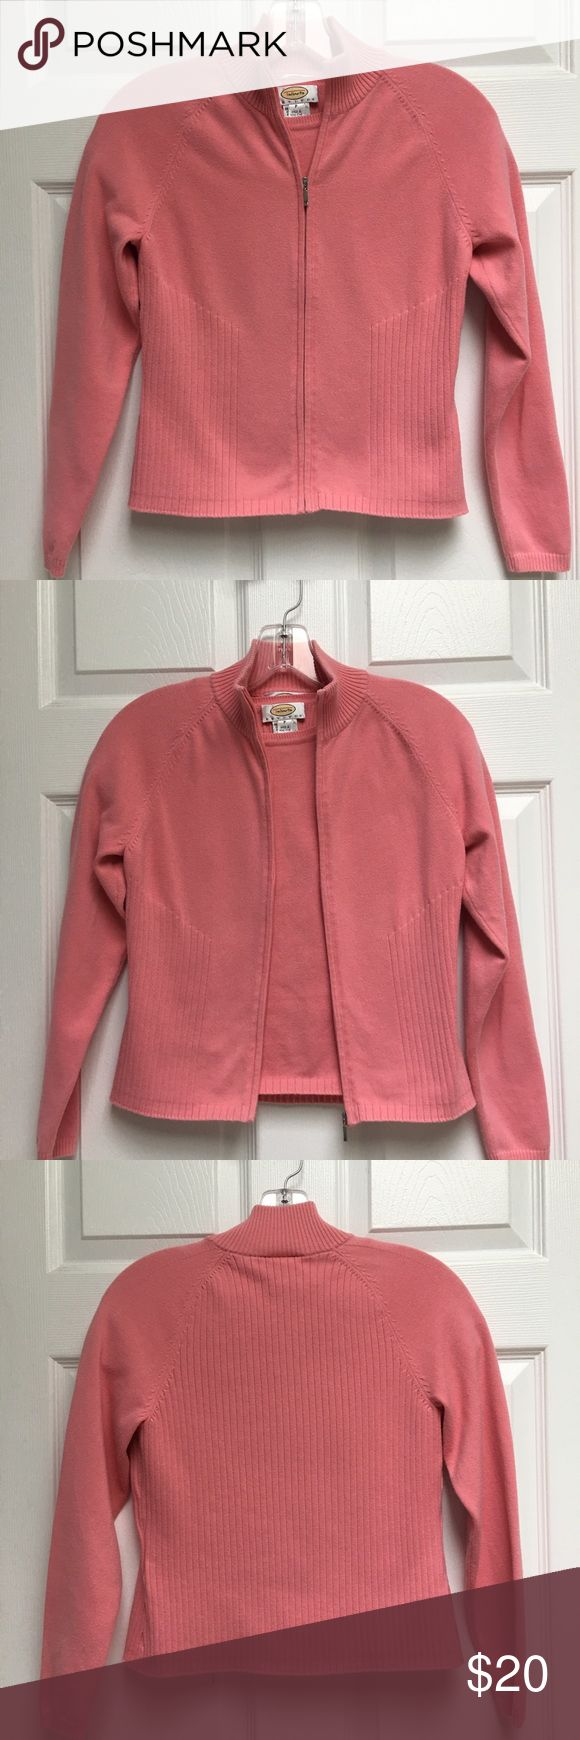 Talbots sweater set size petite Talbots Petites Size P Cotton candy pink 2 piece set Zip up cardigan with sleeveless shell Cotton/nylon/spandex Talbots Sweaters Cardigans